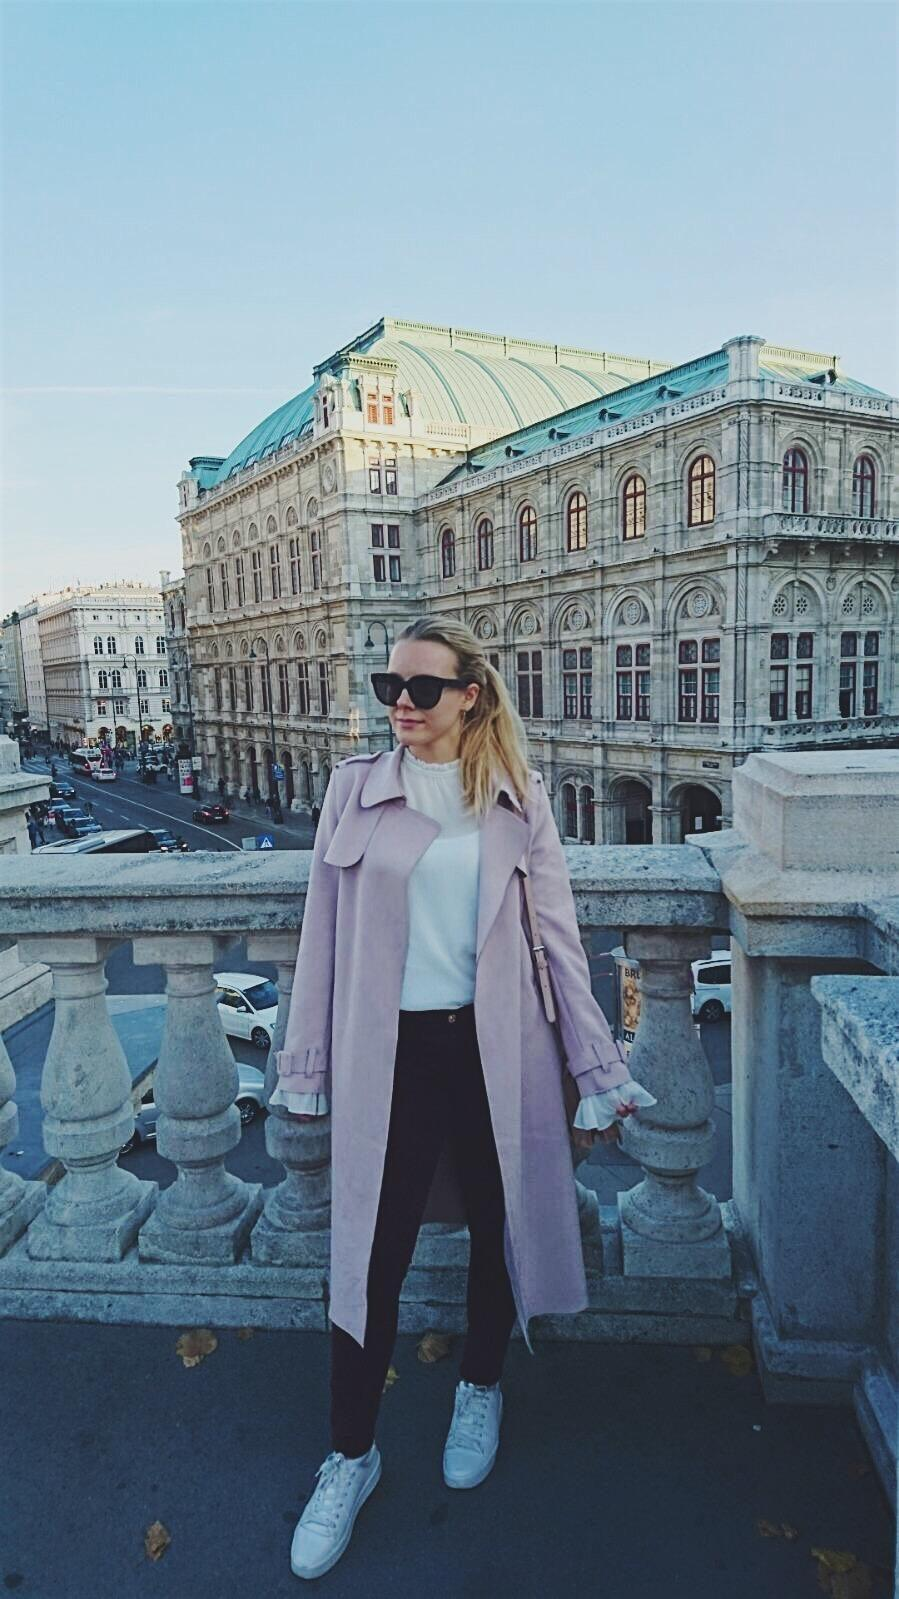 Mein #streetstyle in meiner Wahlheimat #wien #mantel #leathercoat #bordeaux #sunglasses #whitesneakers #vienna #ootd